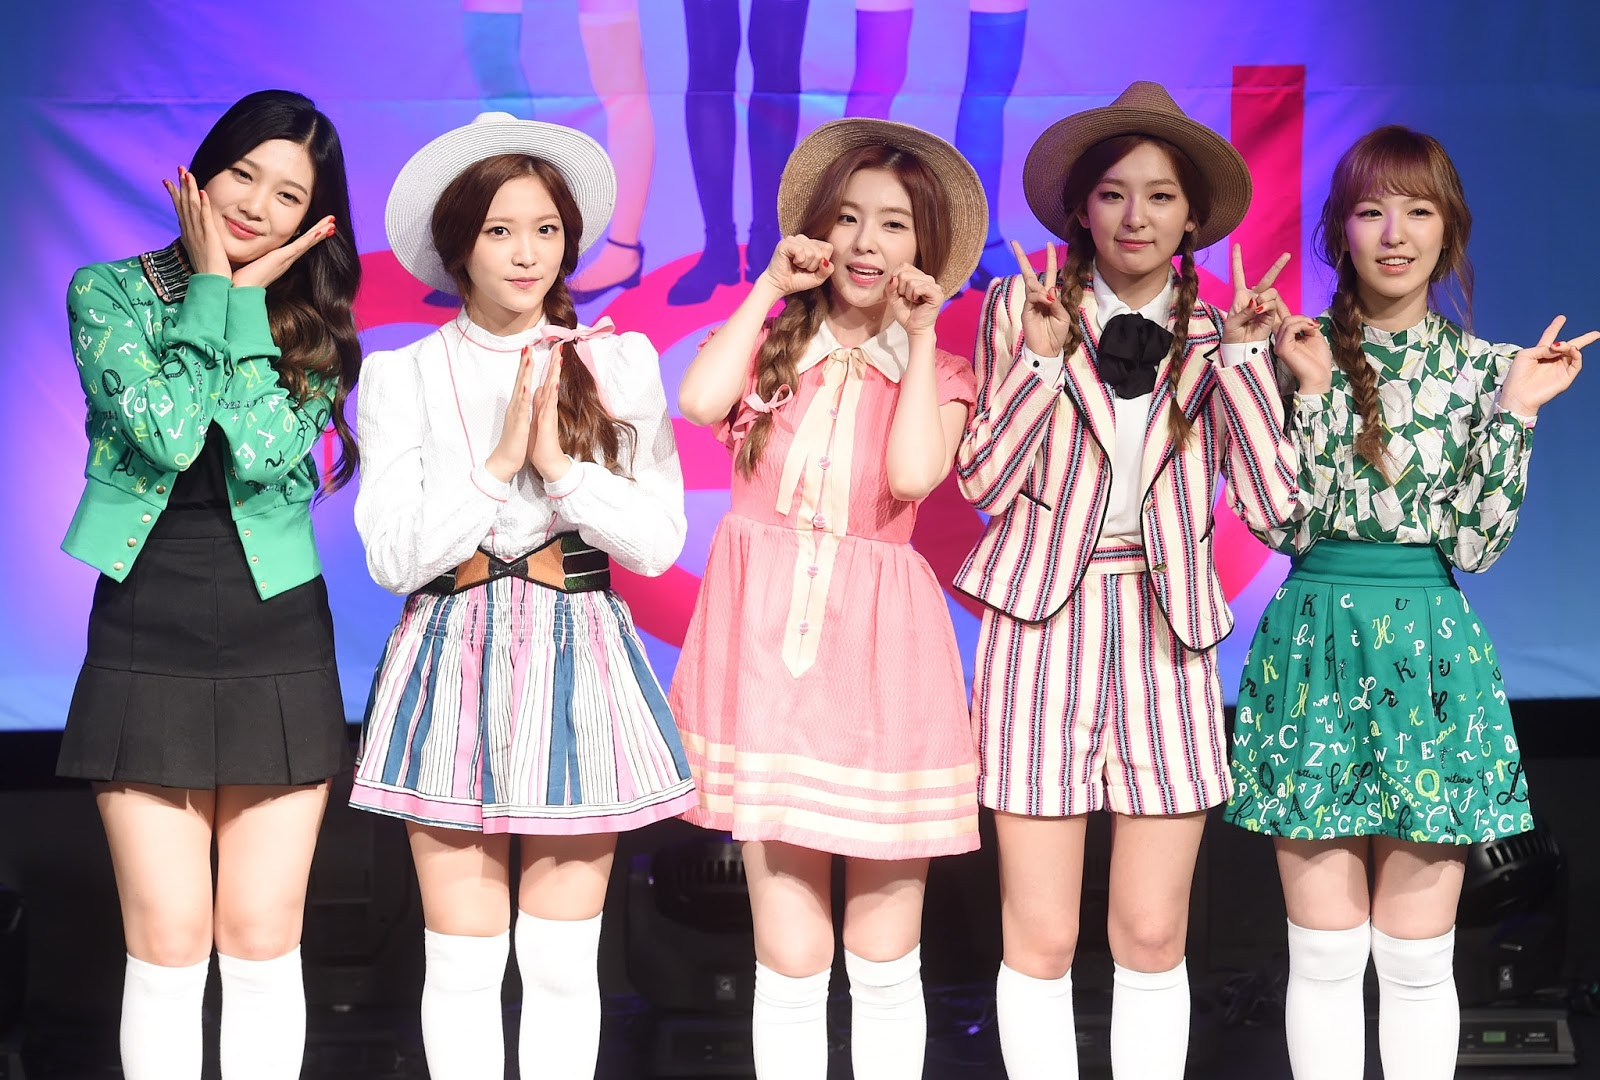 will red velvet be able to become f x -level girl group